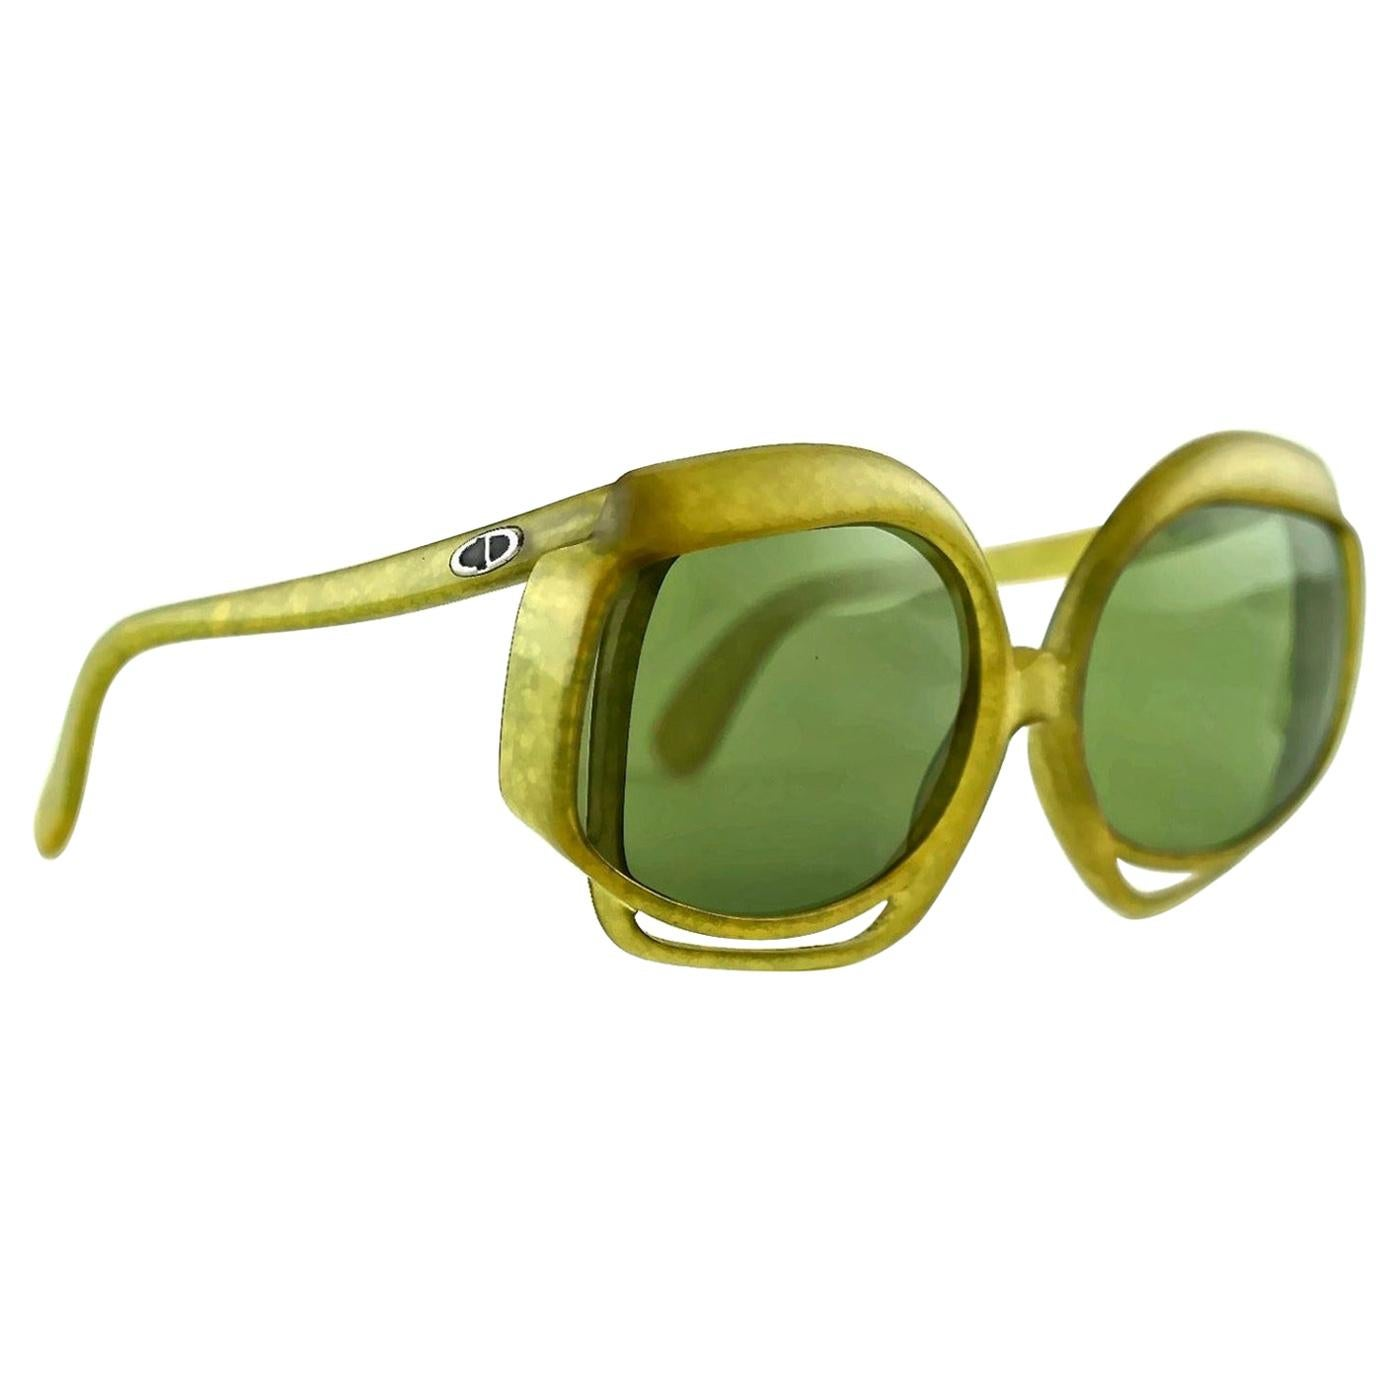 Vintage CHRISTIAN DIOR Openwork Space Age Green Oversized Sunglasses